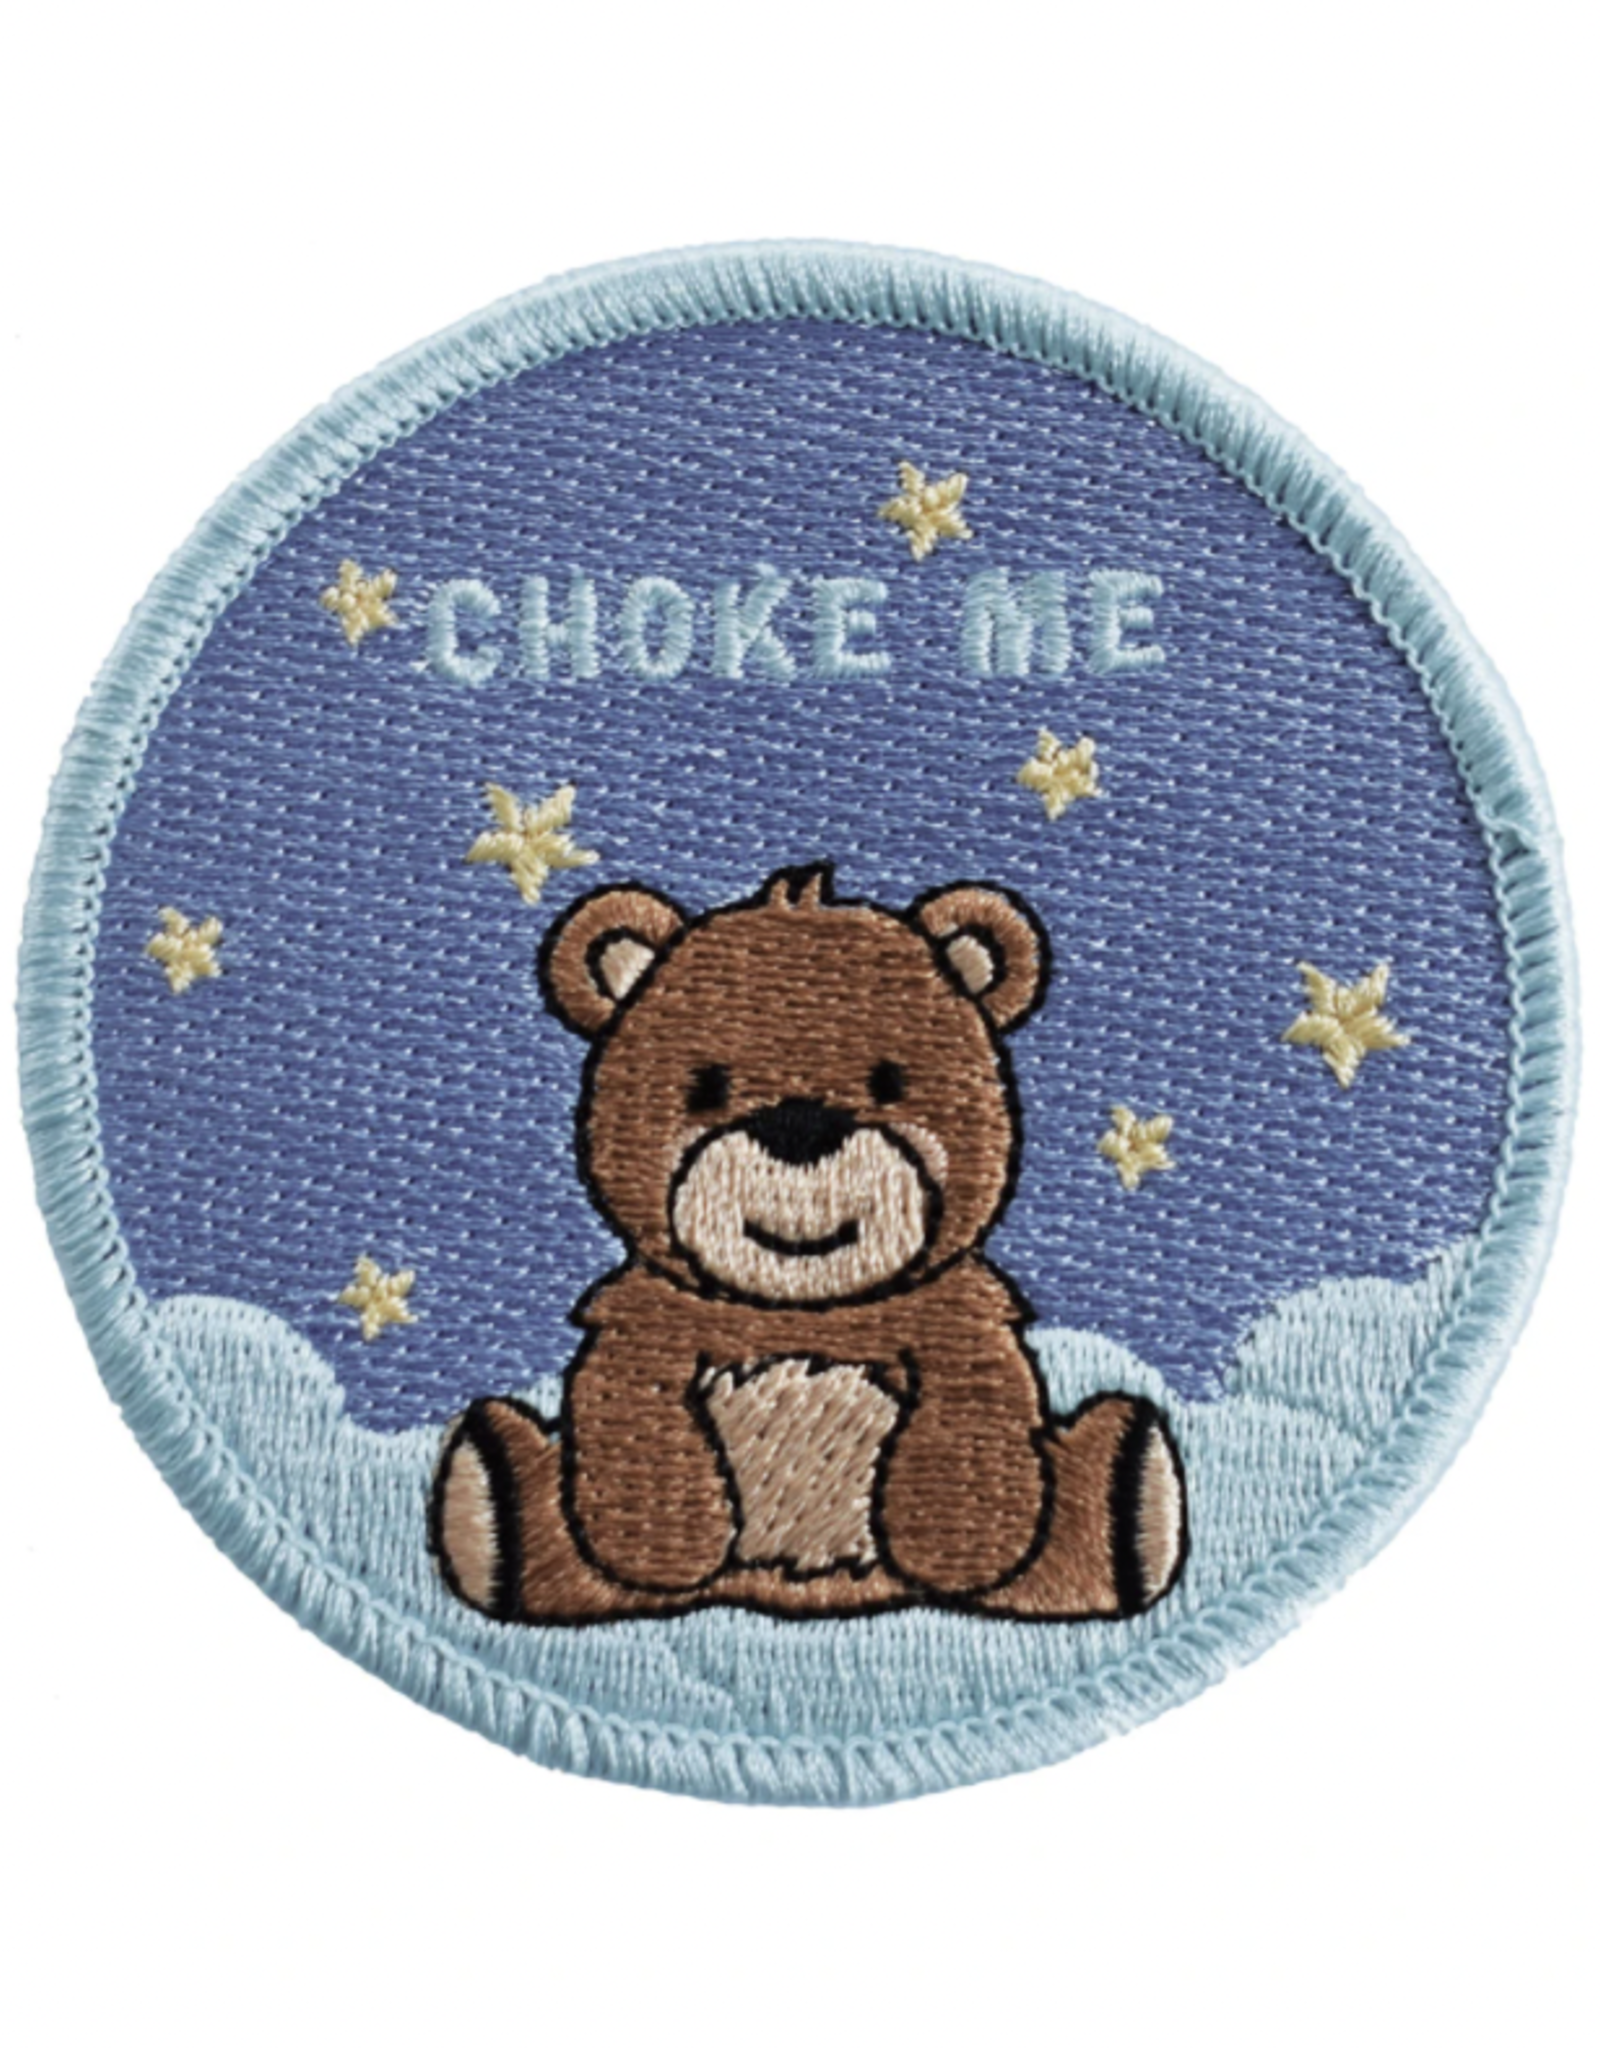 Choke Me Embroidered Patch by Retrograde Supply Co